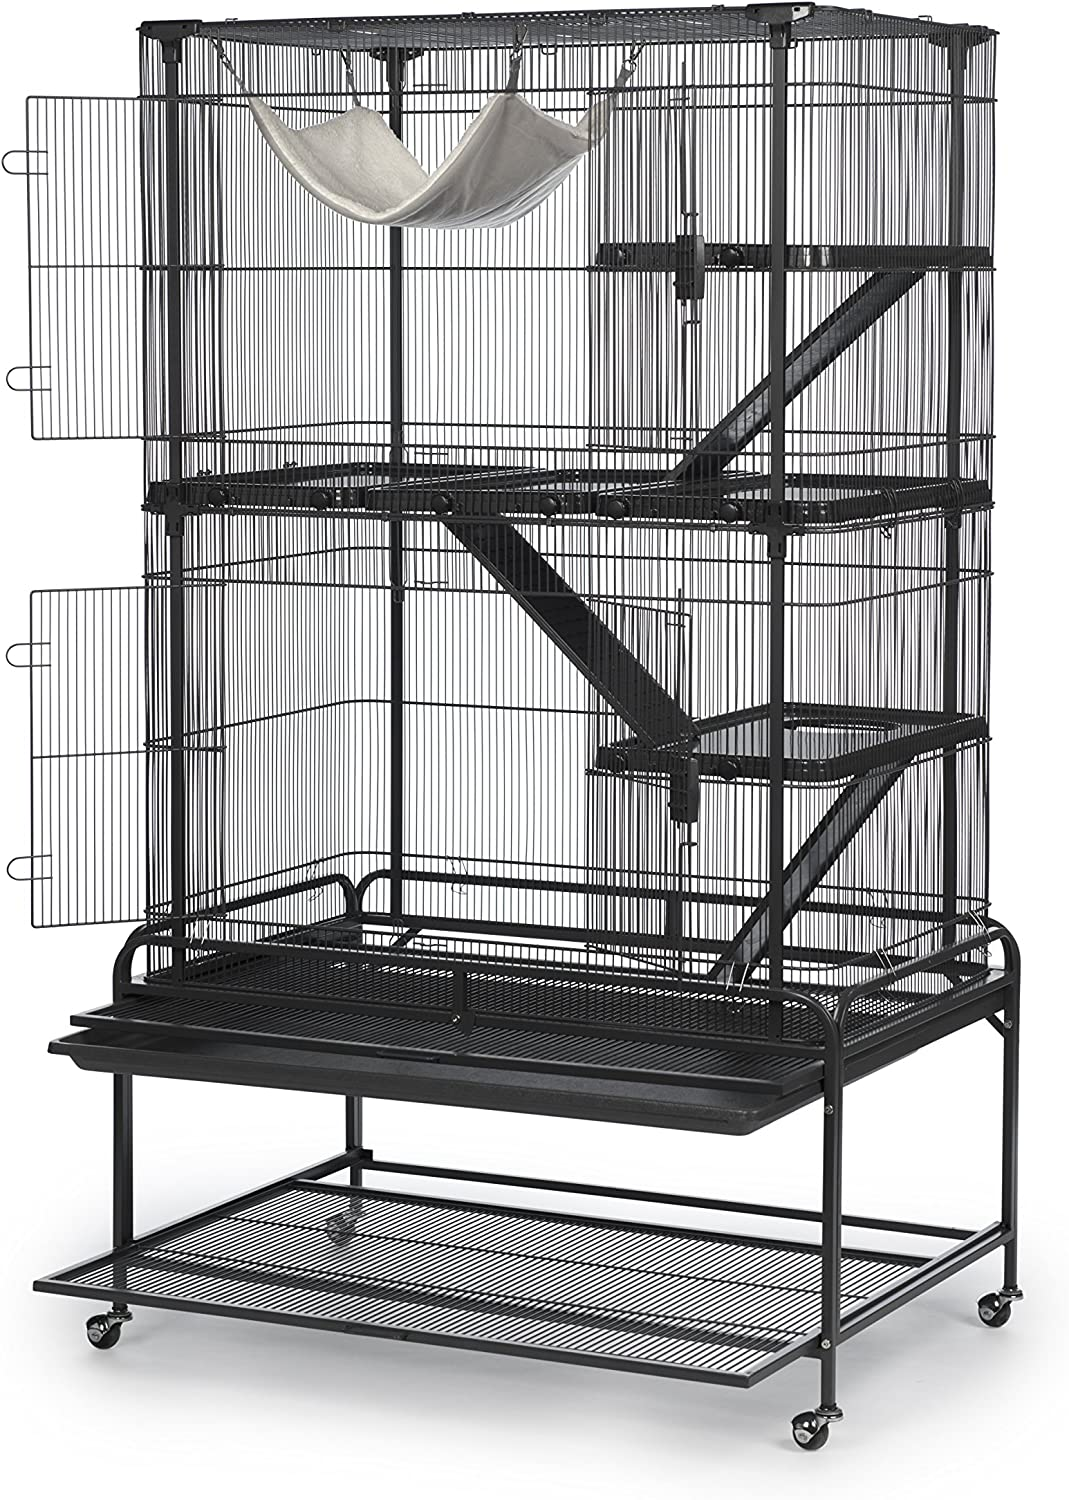 Dark Gray Prevue Pet Products 484 Deluxe Critter Cage